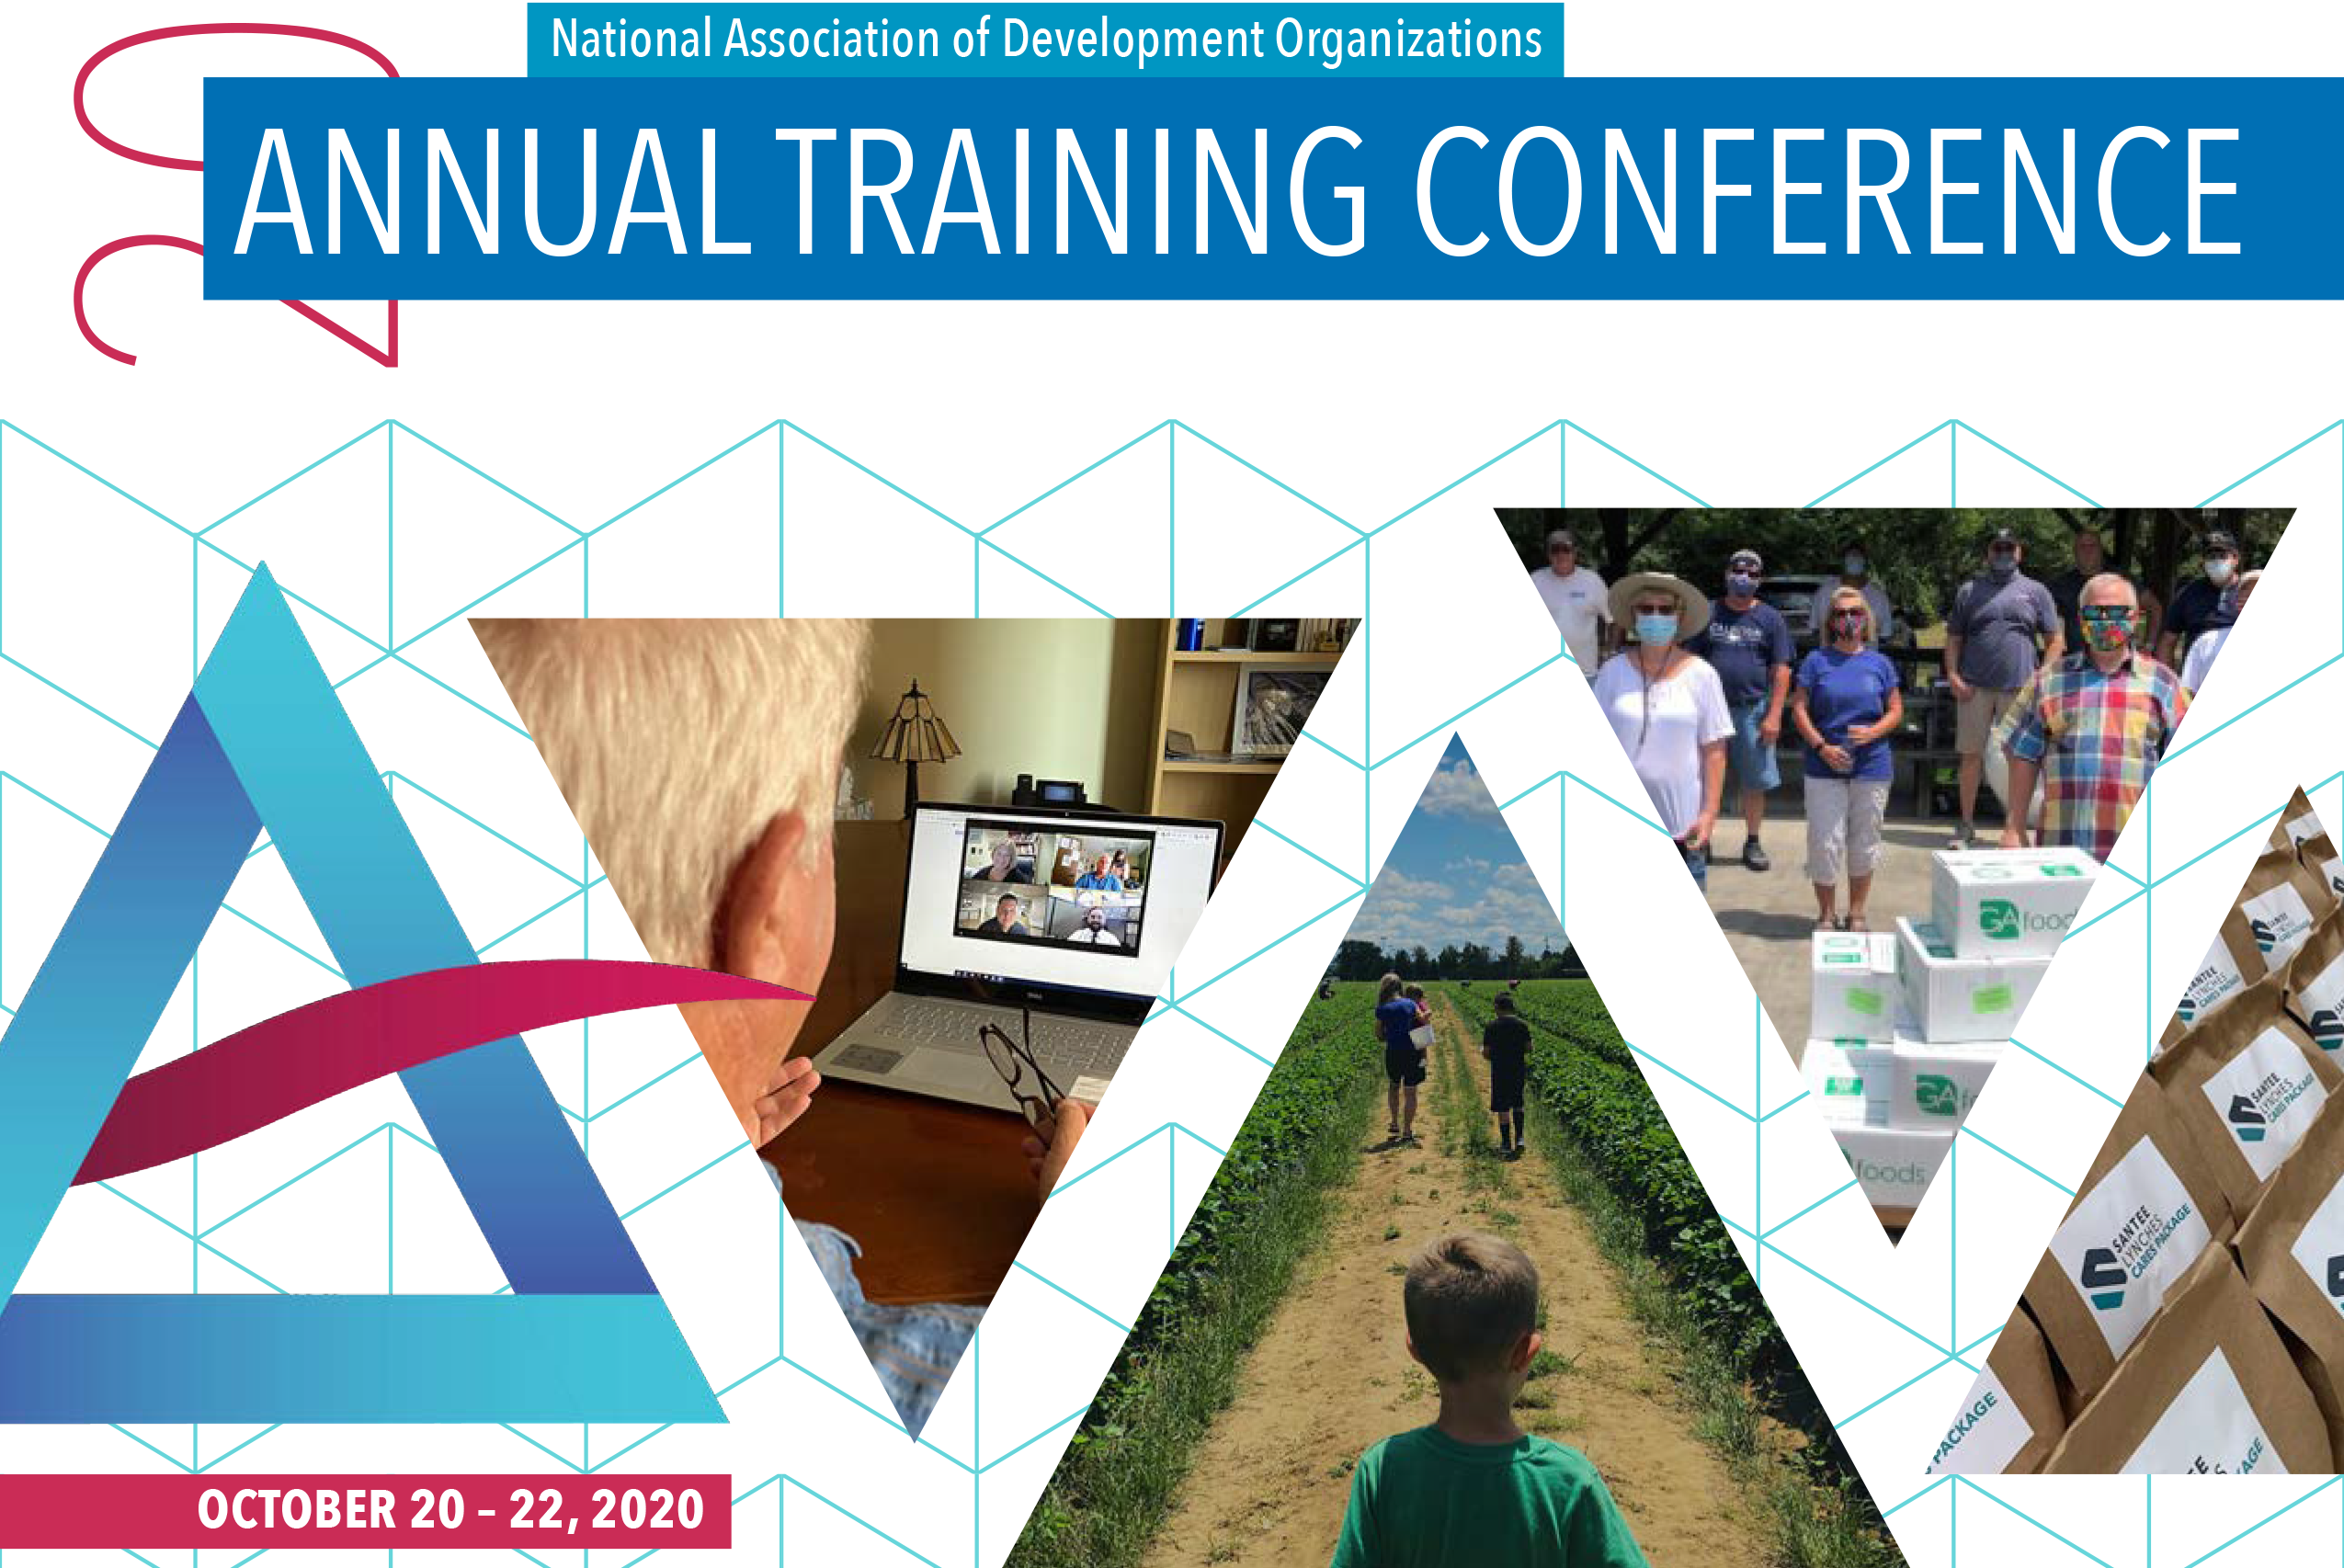 EMDC Speaks at NADO's 2020 Virtual Annual Training Conference